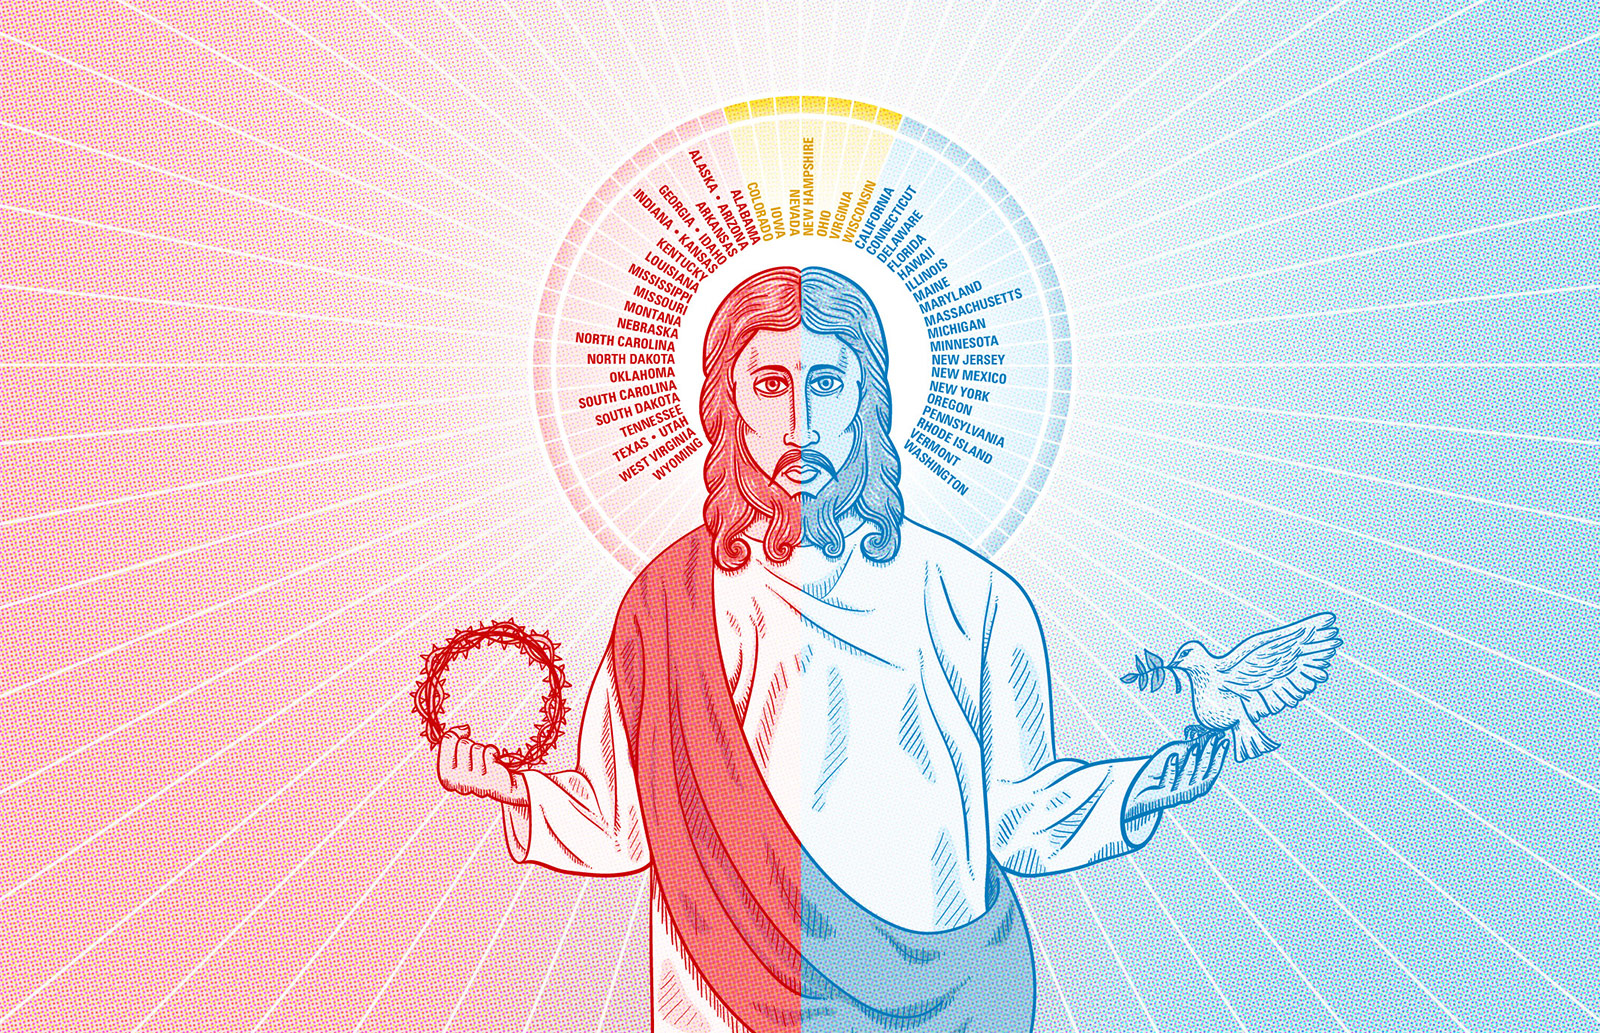 Red State/Blue State Jesus    —  Illustration for a CNN article about how popular conceptions of Jesus differ in red states and blue states . C  opyright © 2012 Cable News Network. Turner Broadcasting System, Inc. All rights reserved.